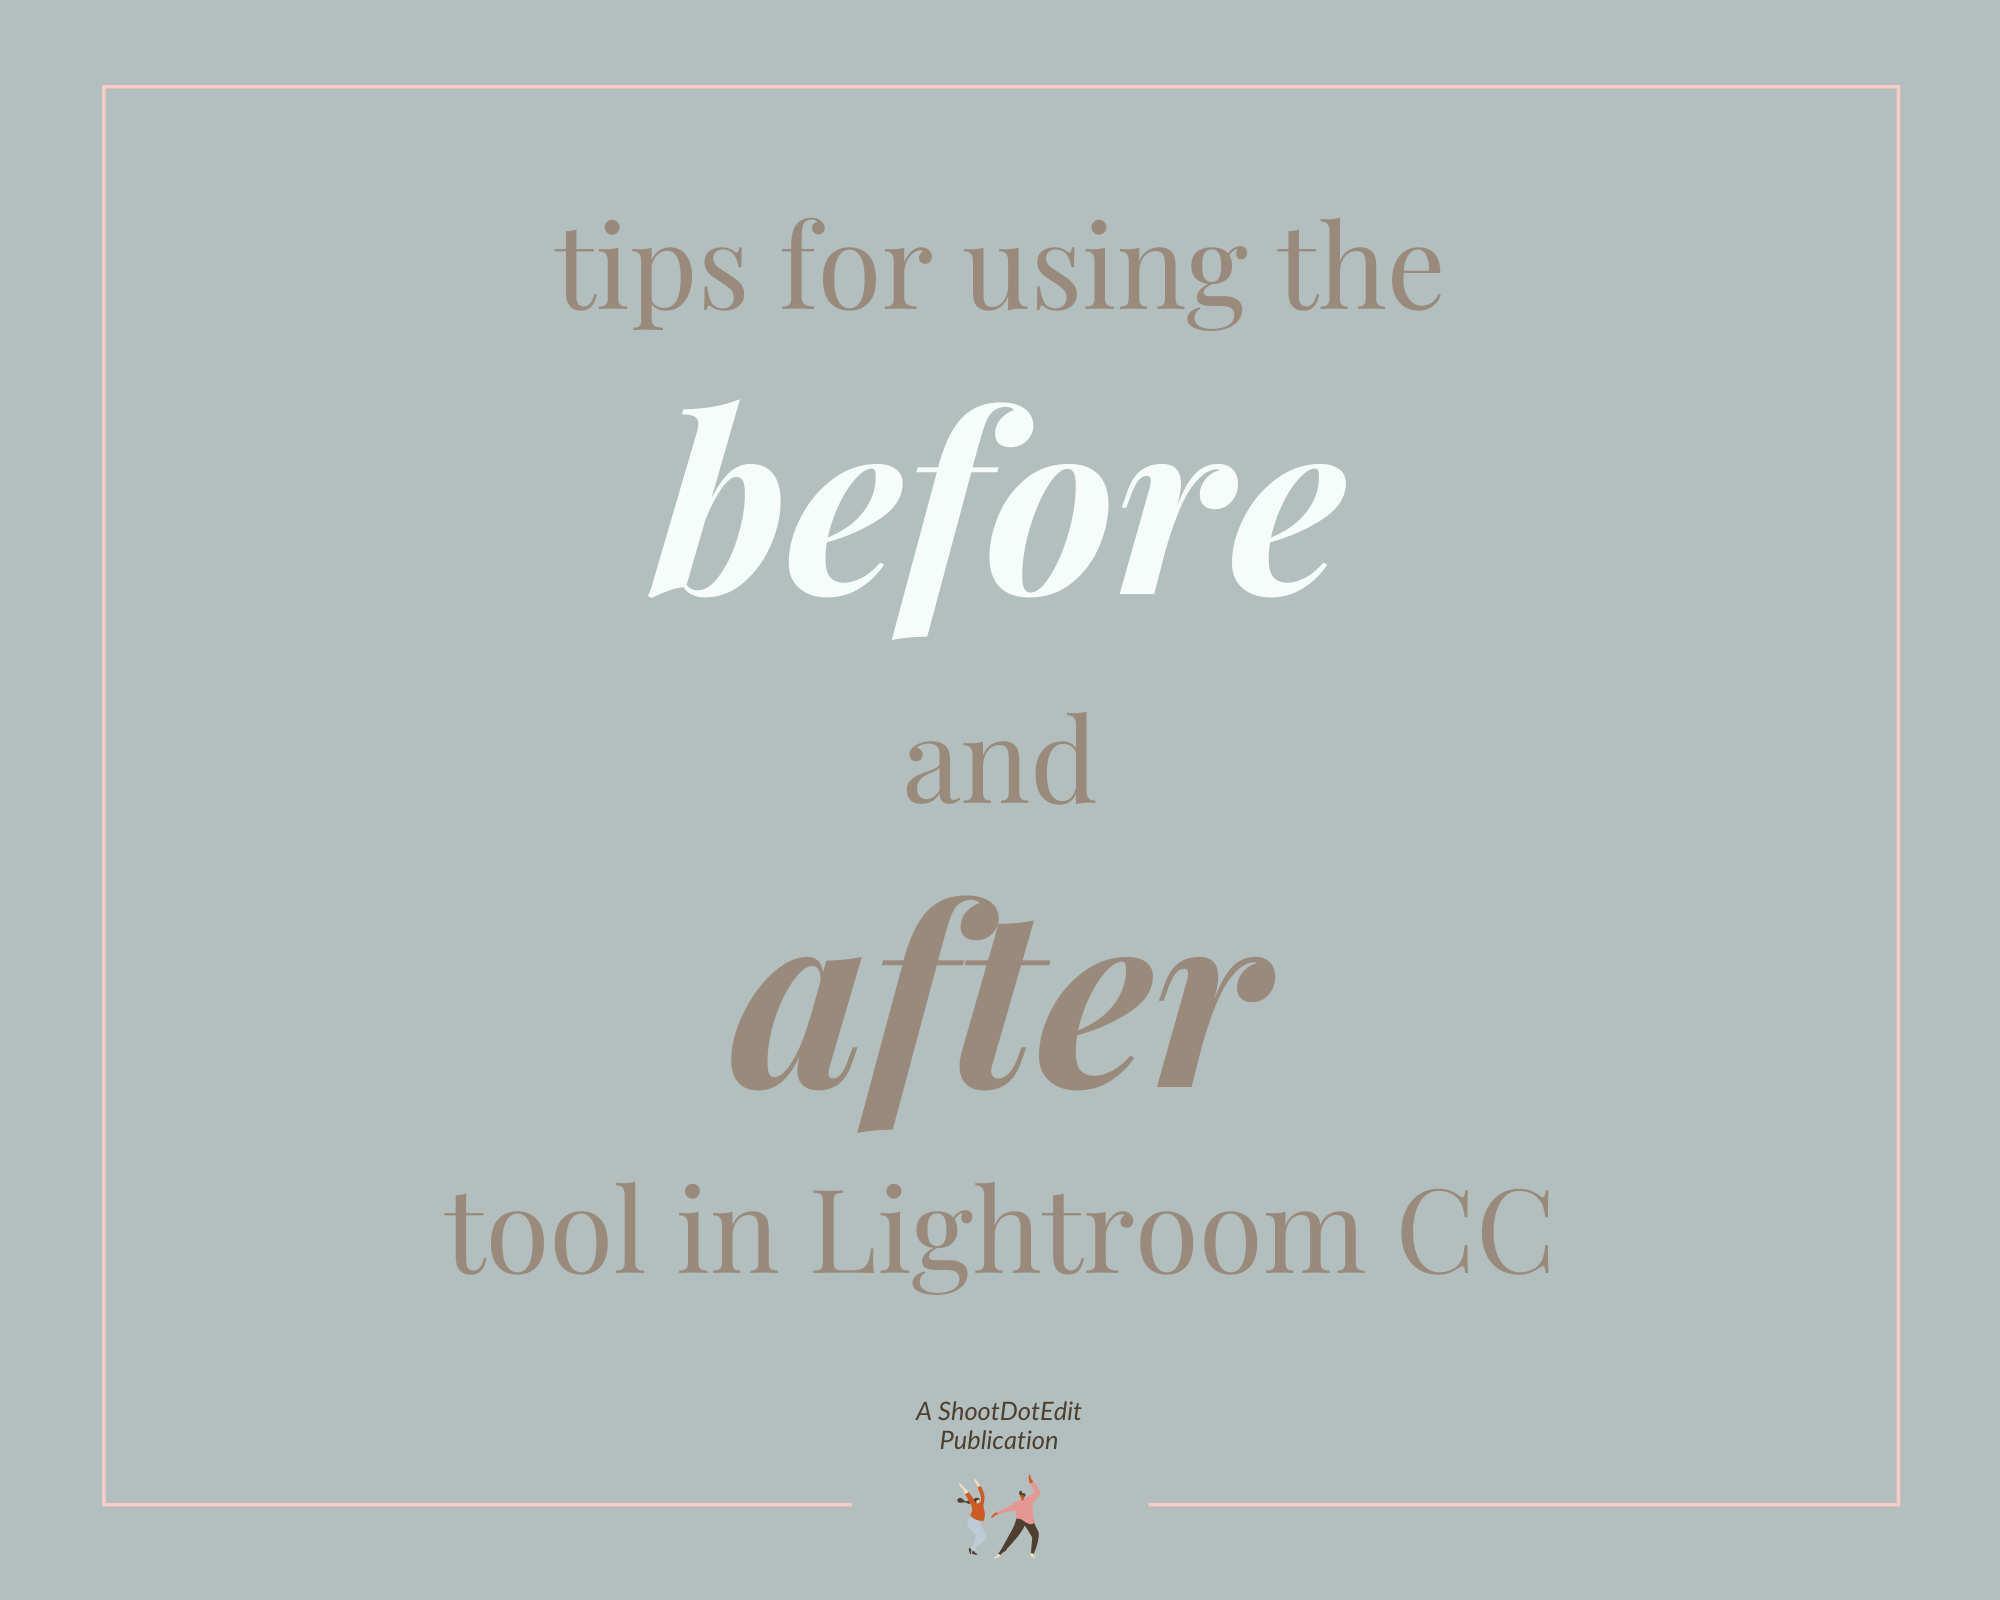 Infographic stating tips for using the before and after tool in Lightroom CC